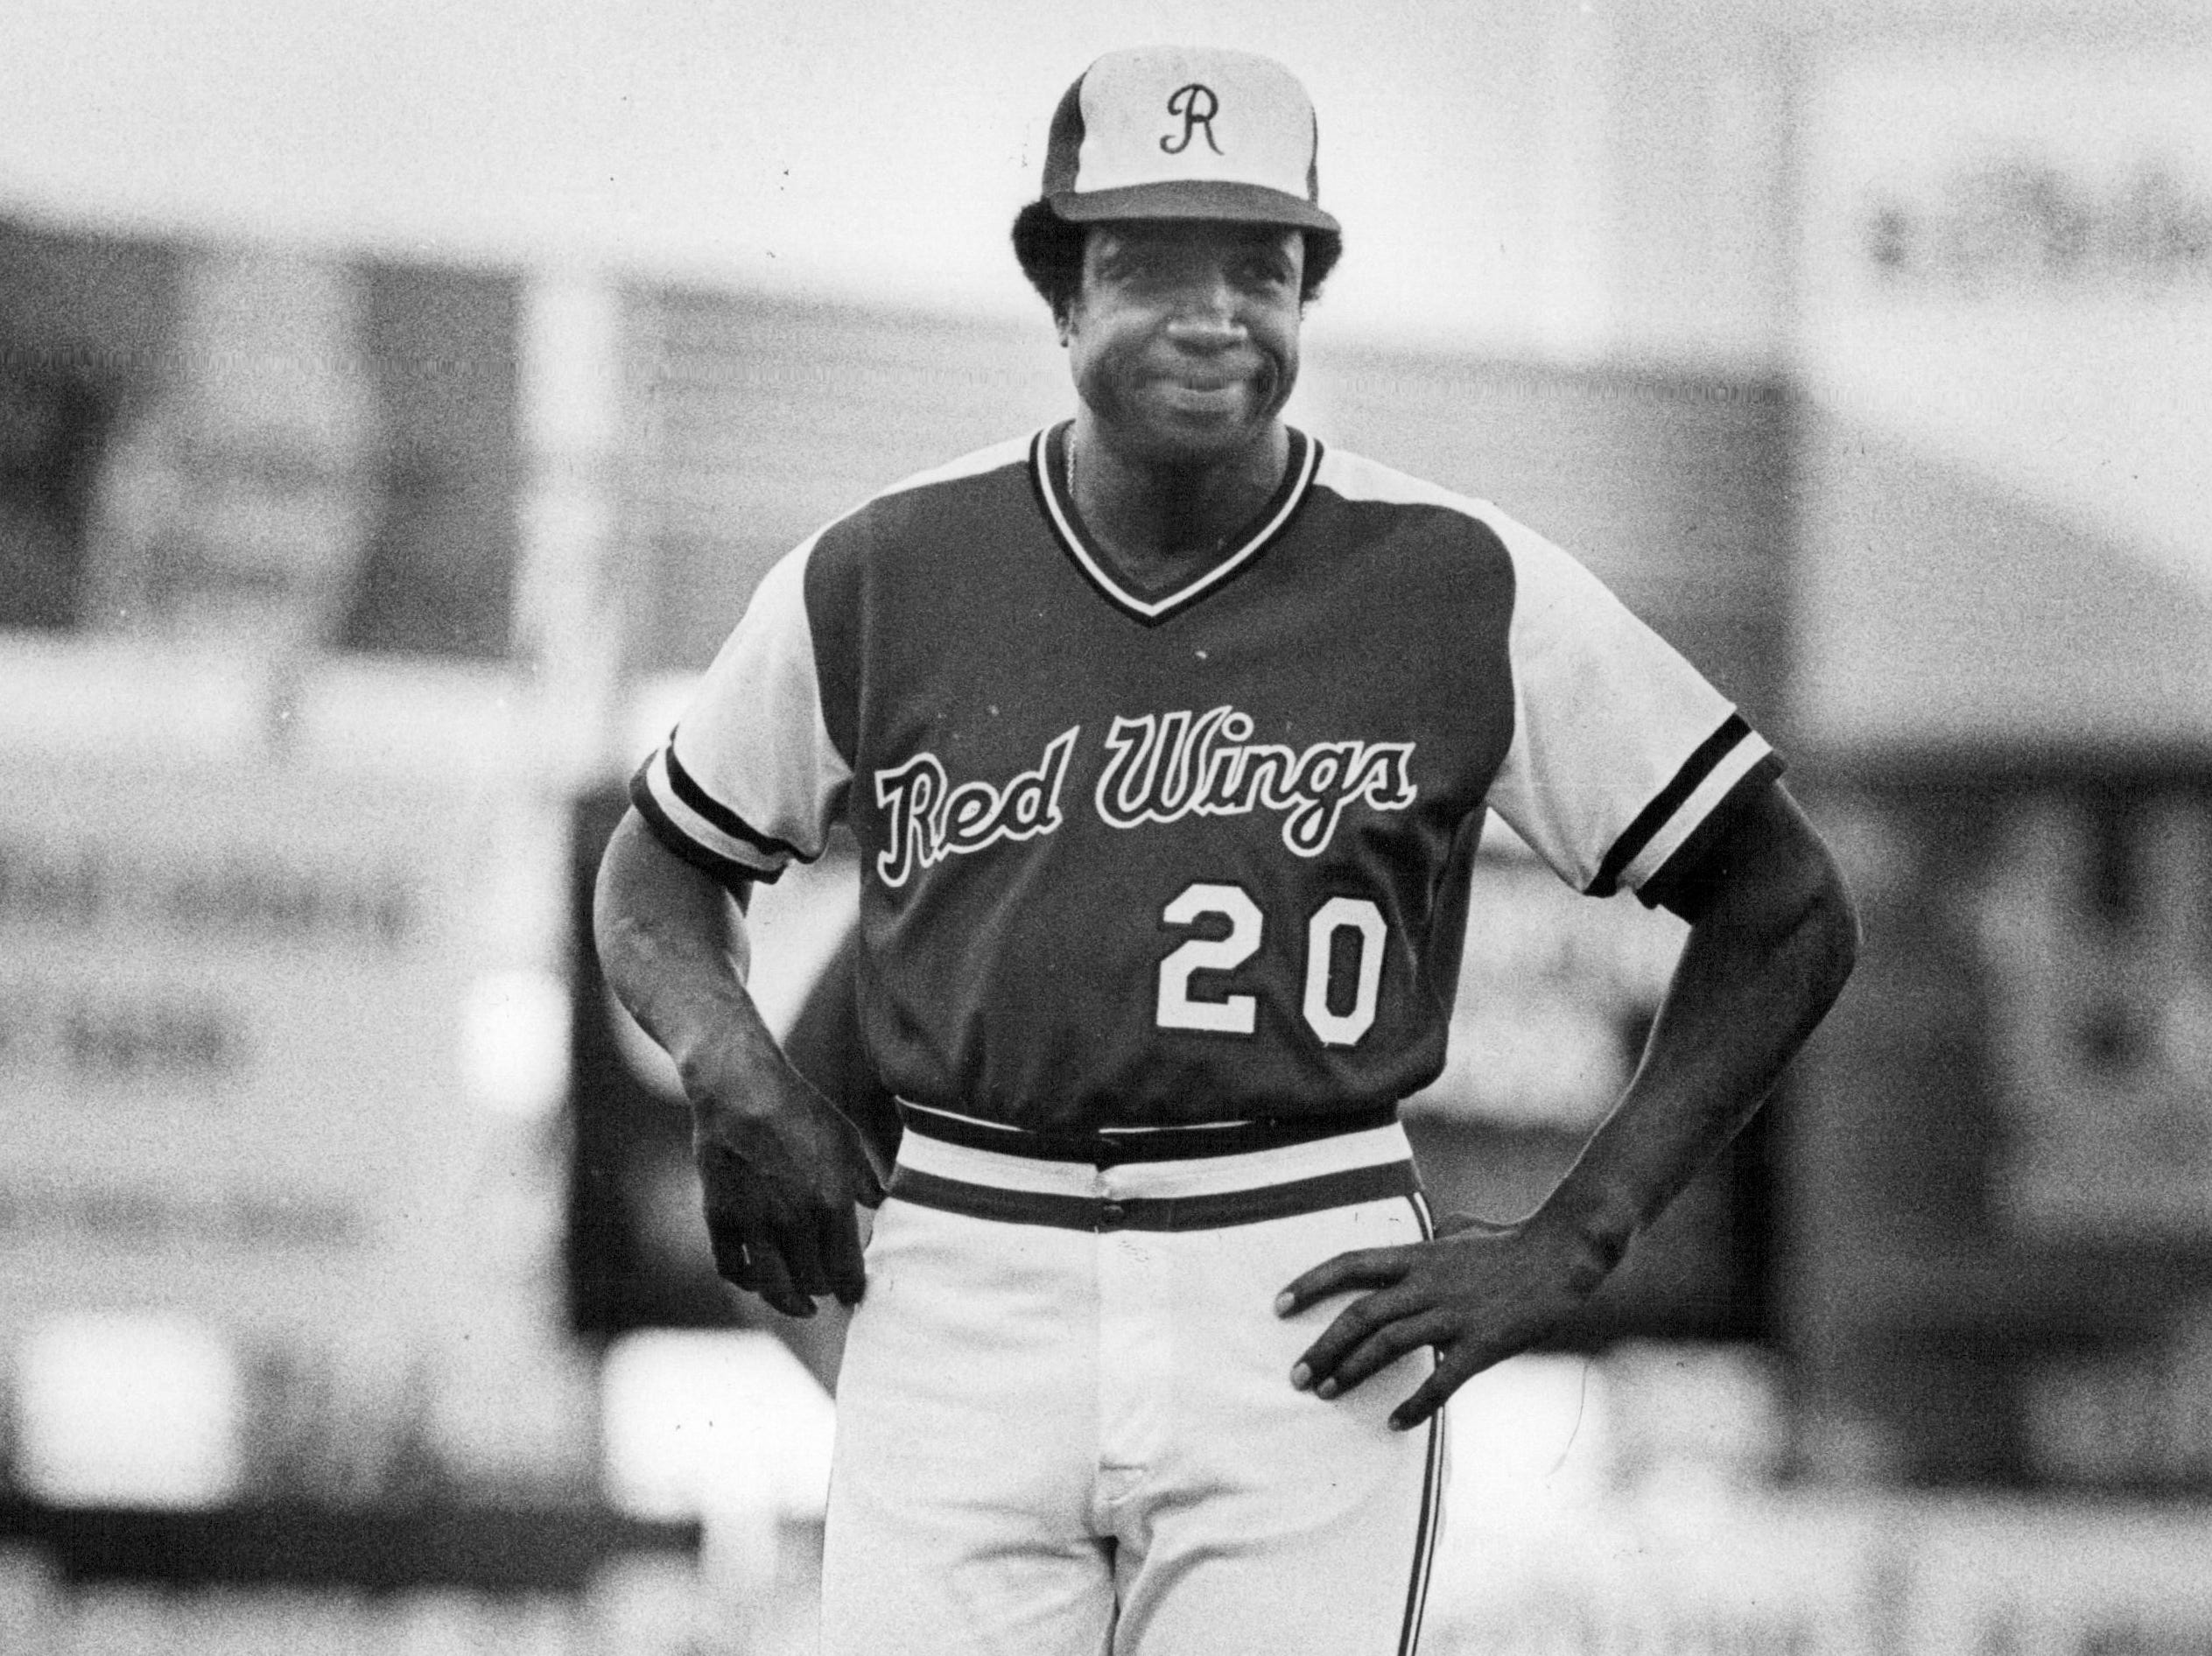 Frank Robinson managed the Rochester Red Wings for 112 games in 1978. The Baseball Hall of Famer died on Feb. 7, 2019 at the age of 83.